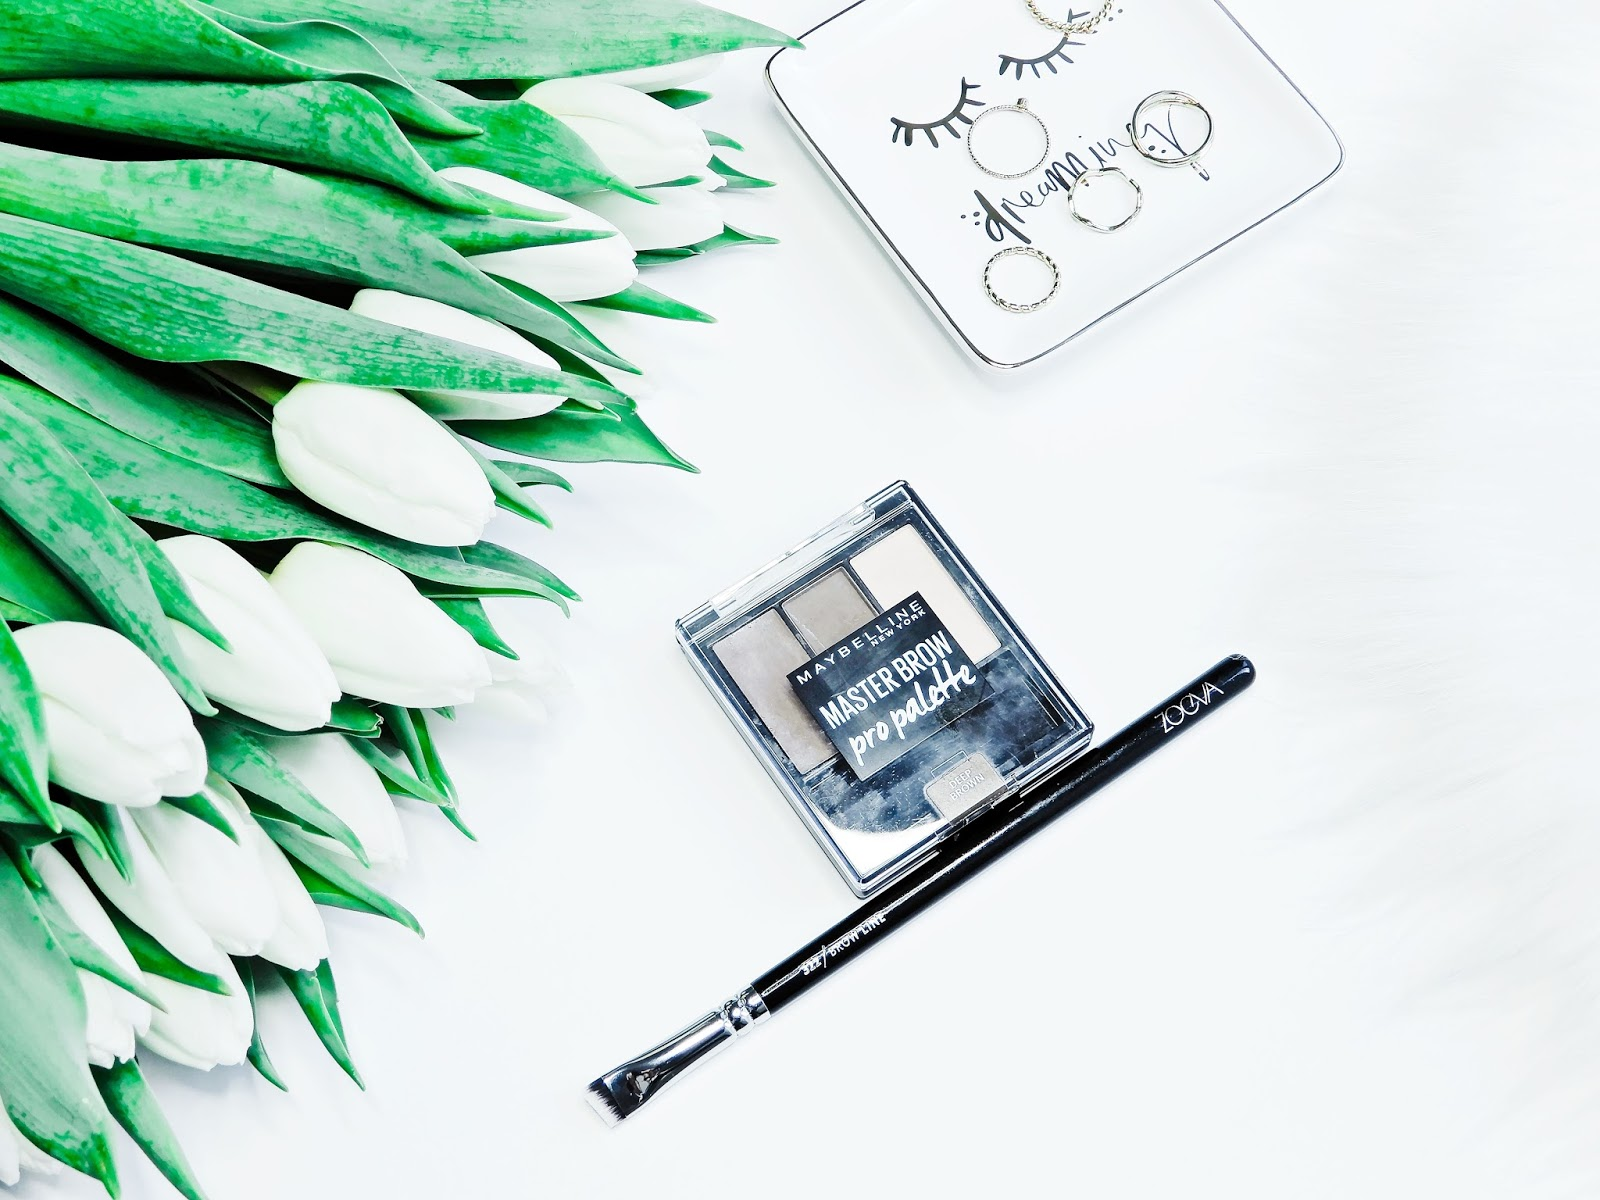 Maybelline Master Brow pro palette,